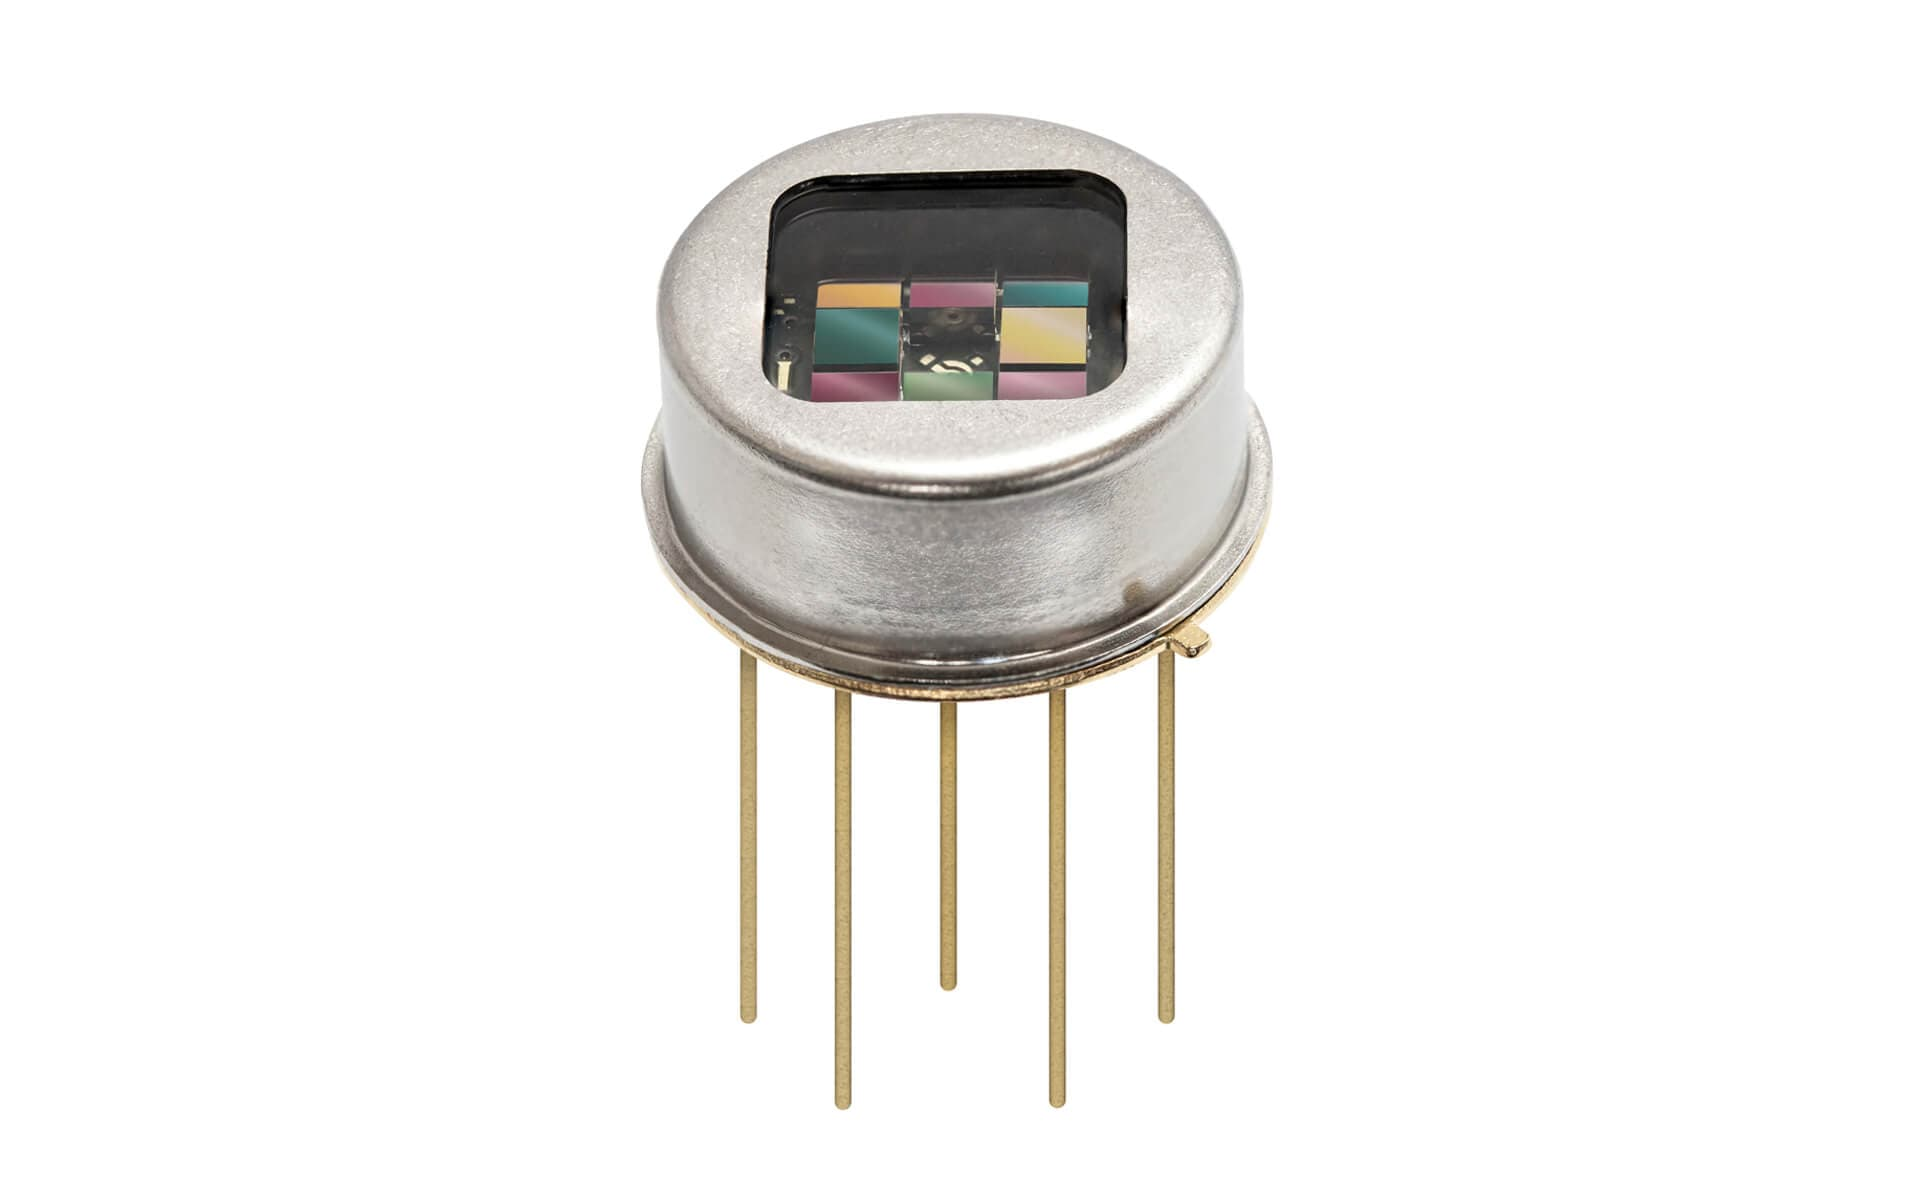 PYROMID® multi channel detector LRM-278 from InfraTec